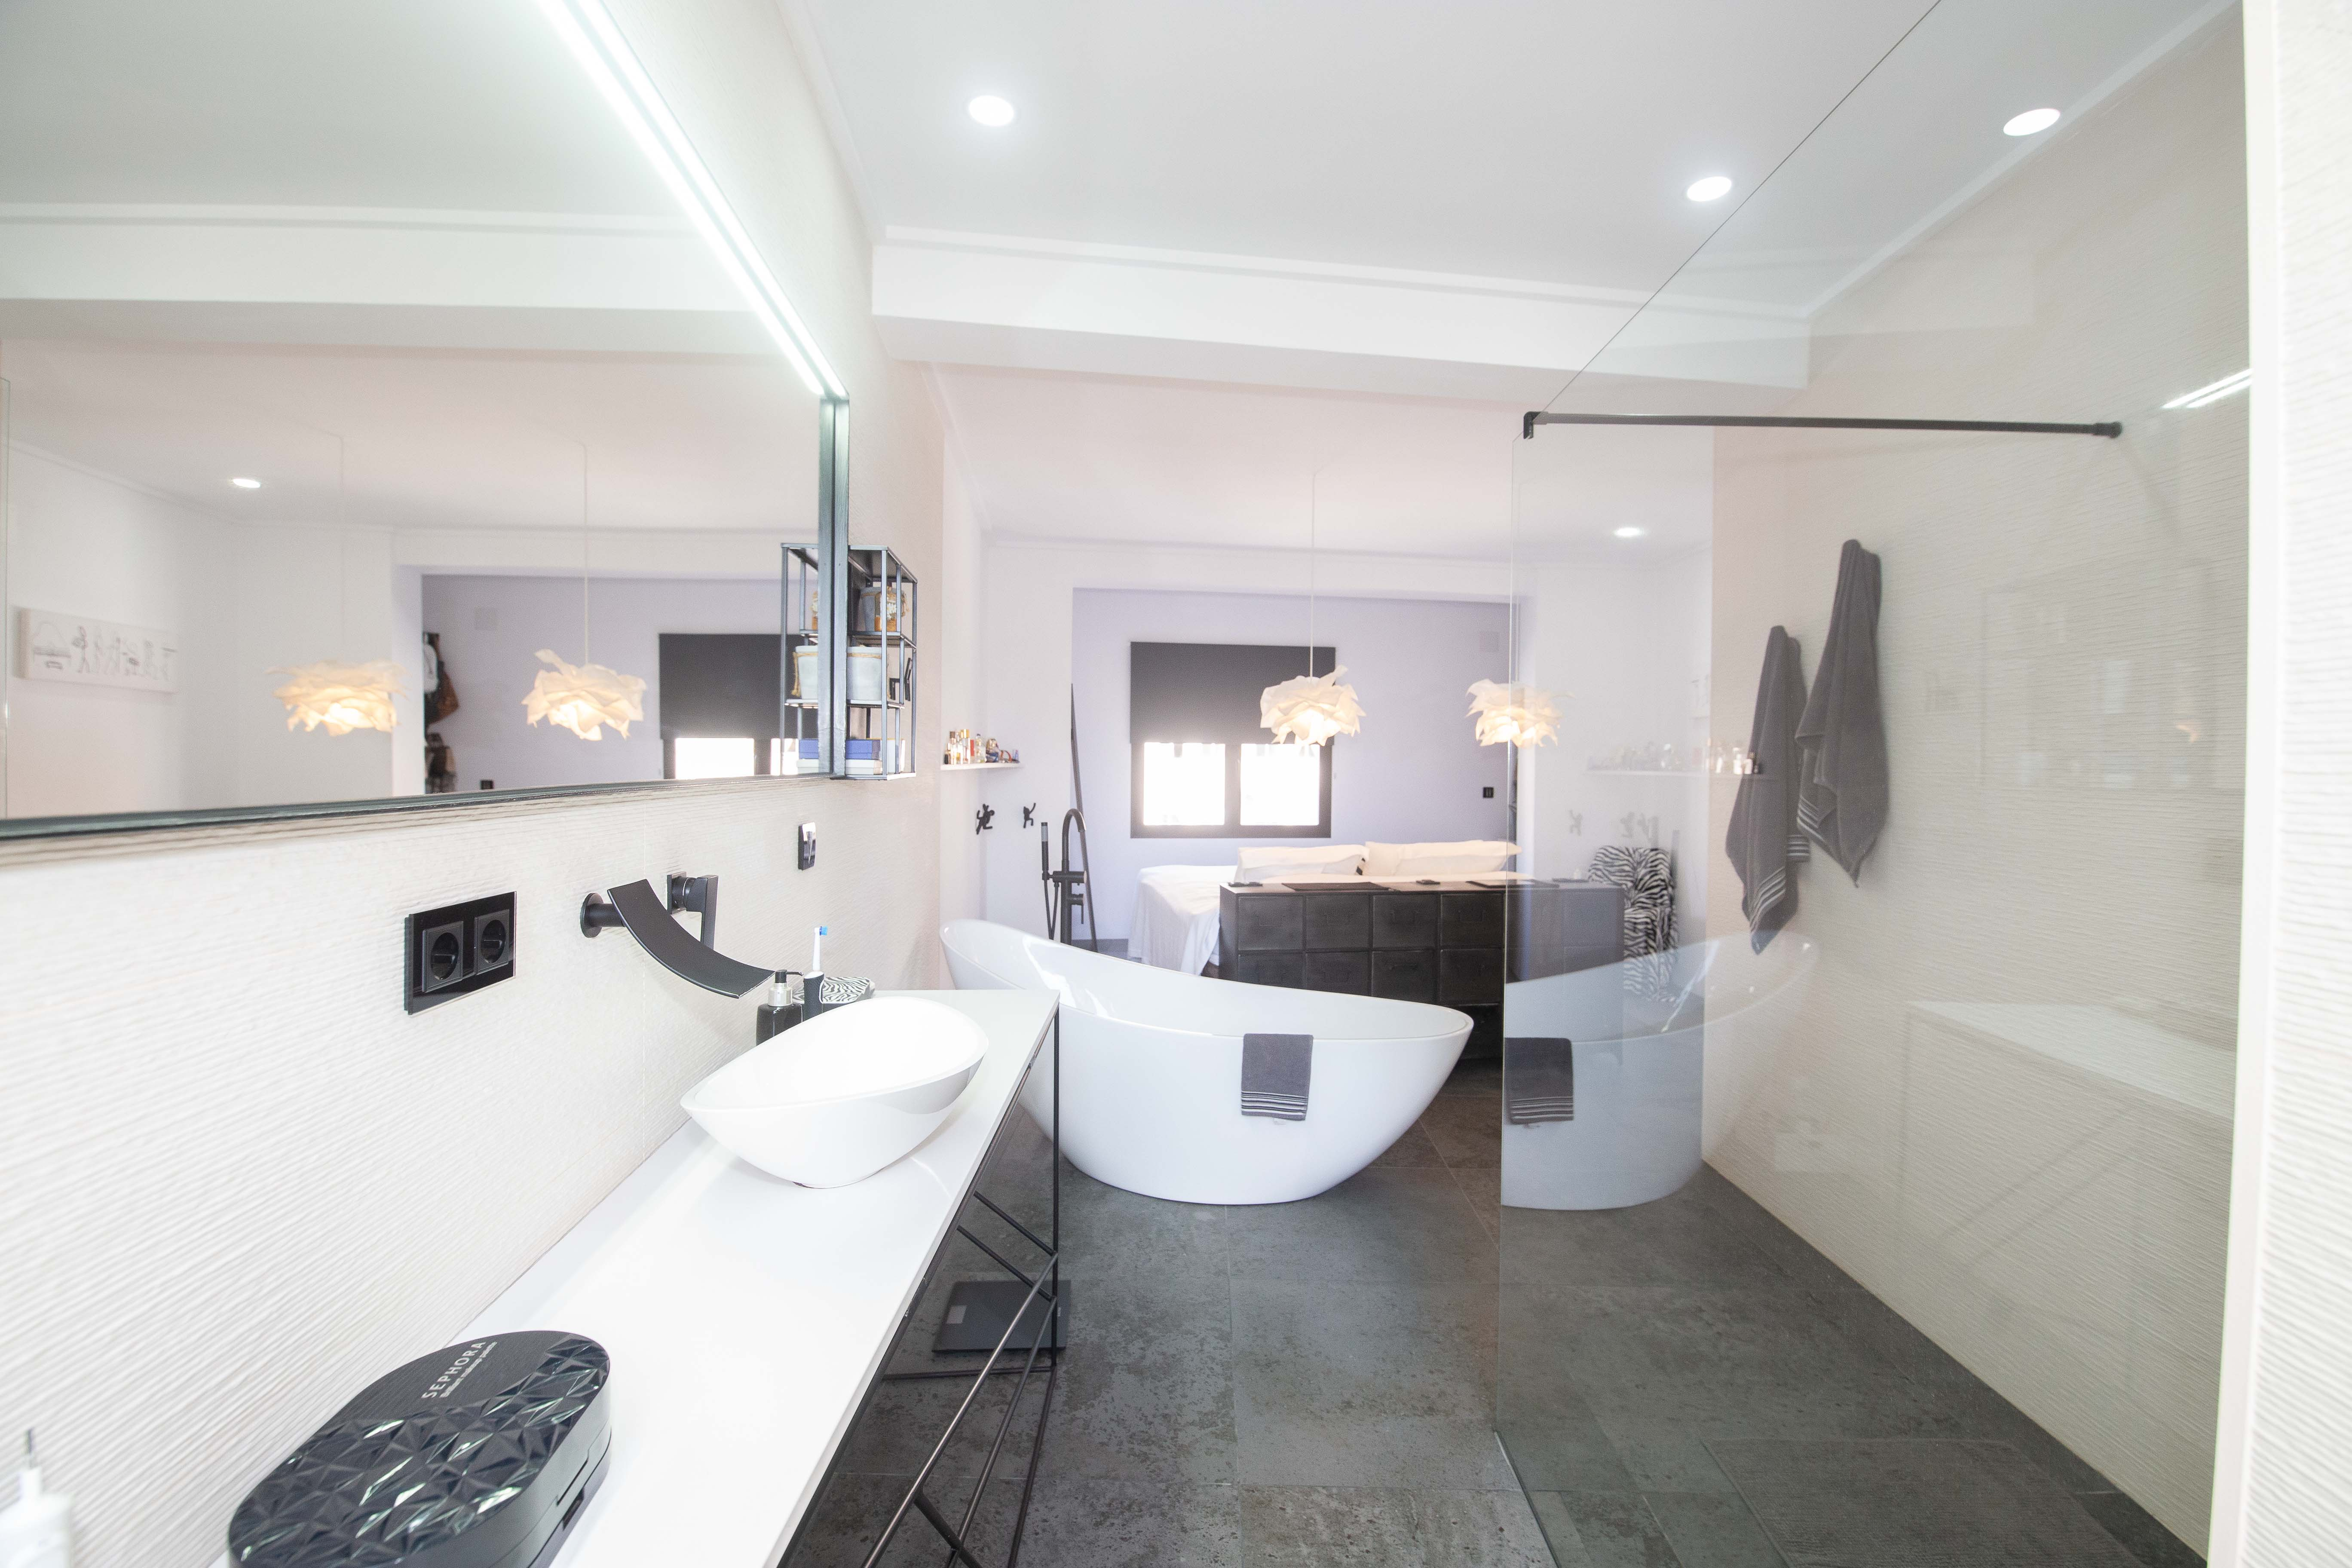 Photogallery - 22 - Vives Pons Homes